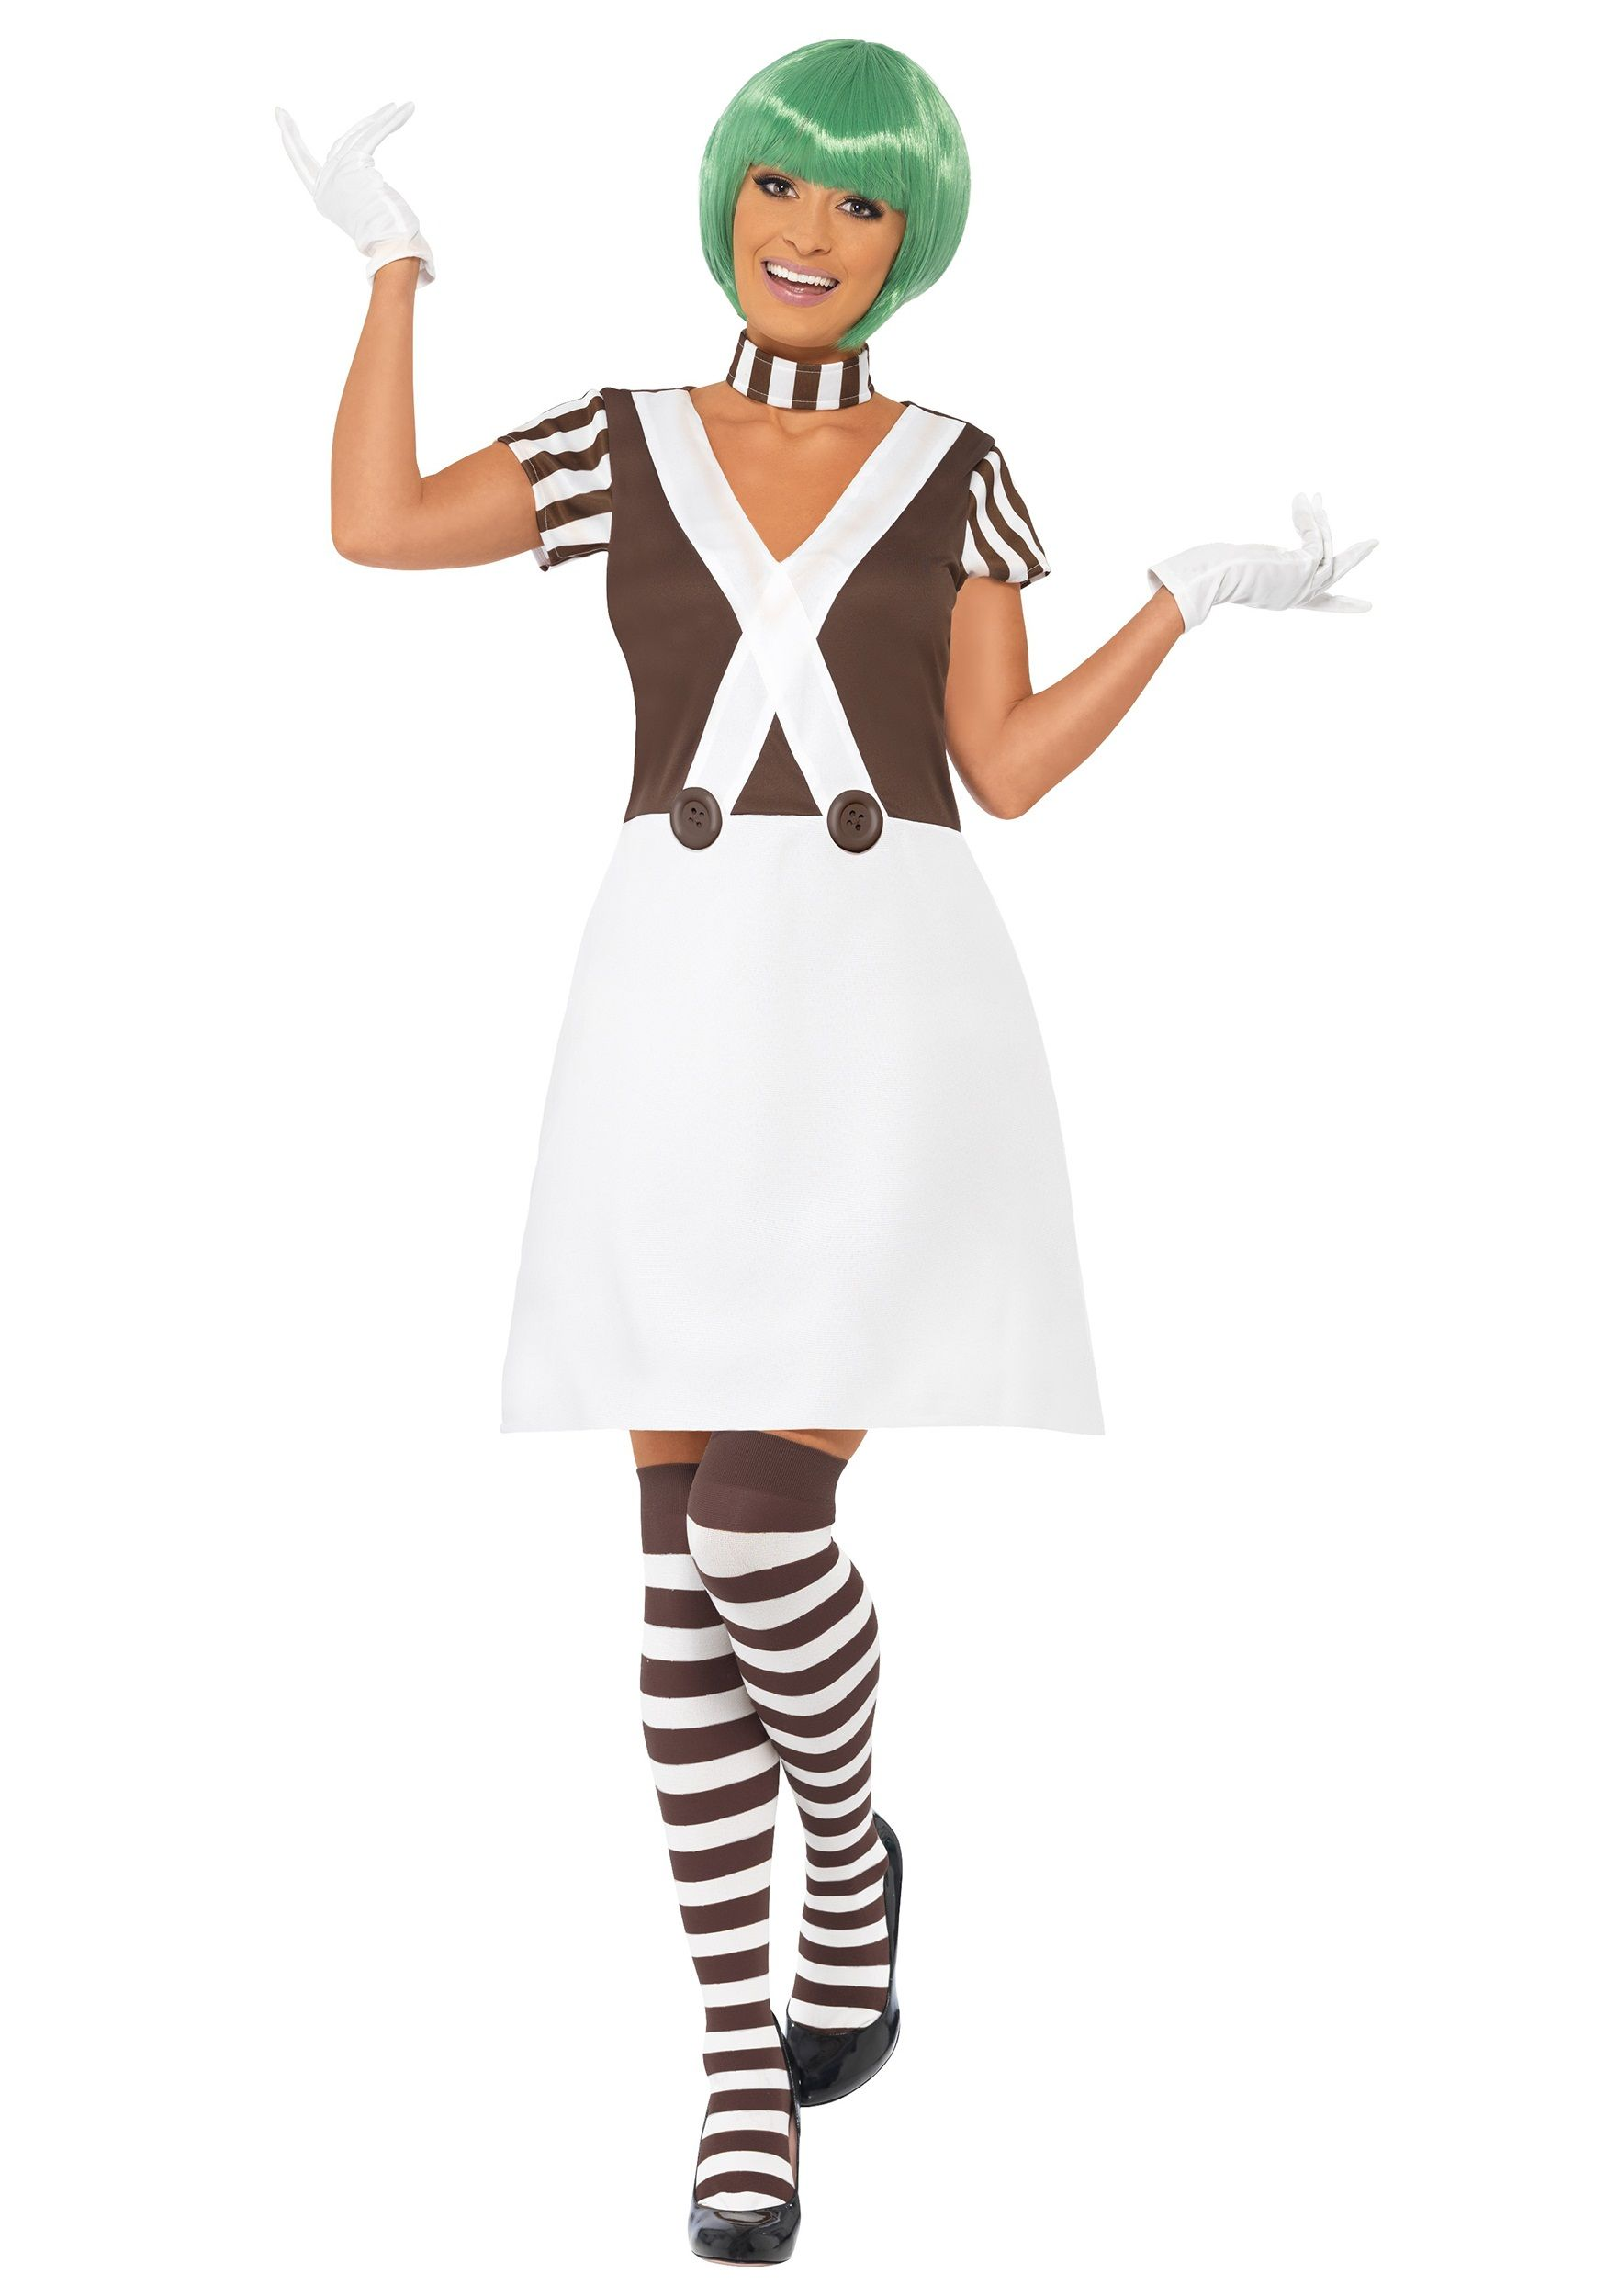 Charlie Oompa Loompa And The Chocolate Factory Fancy Dress 4 Piece Costume